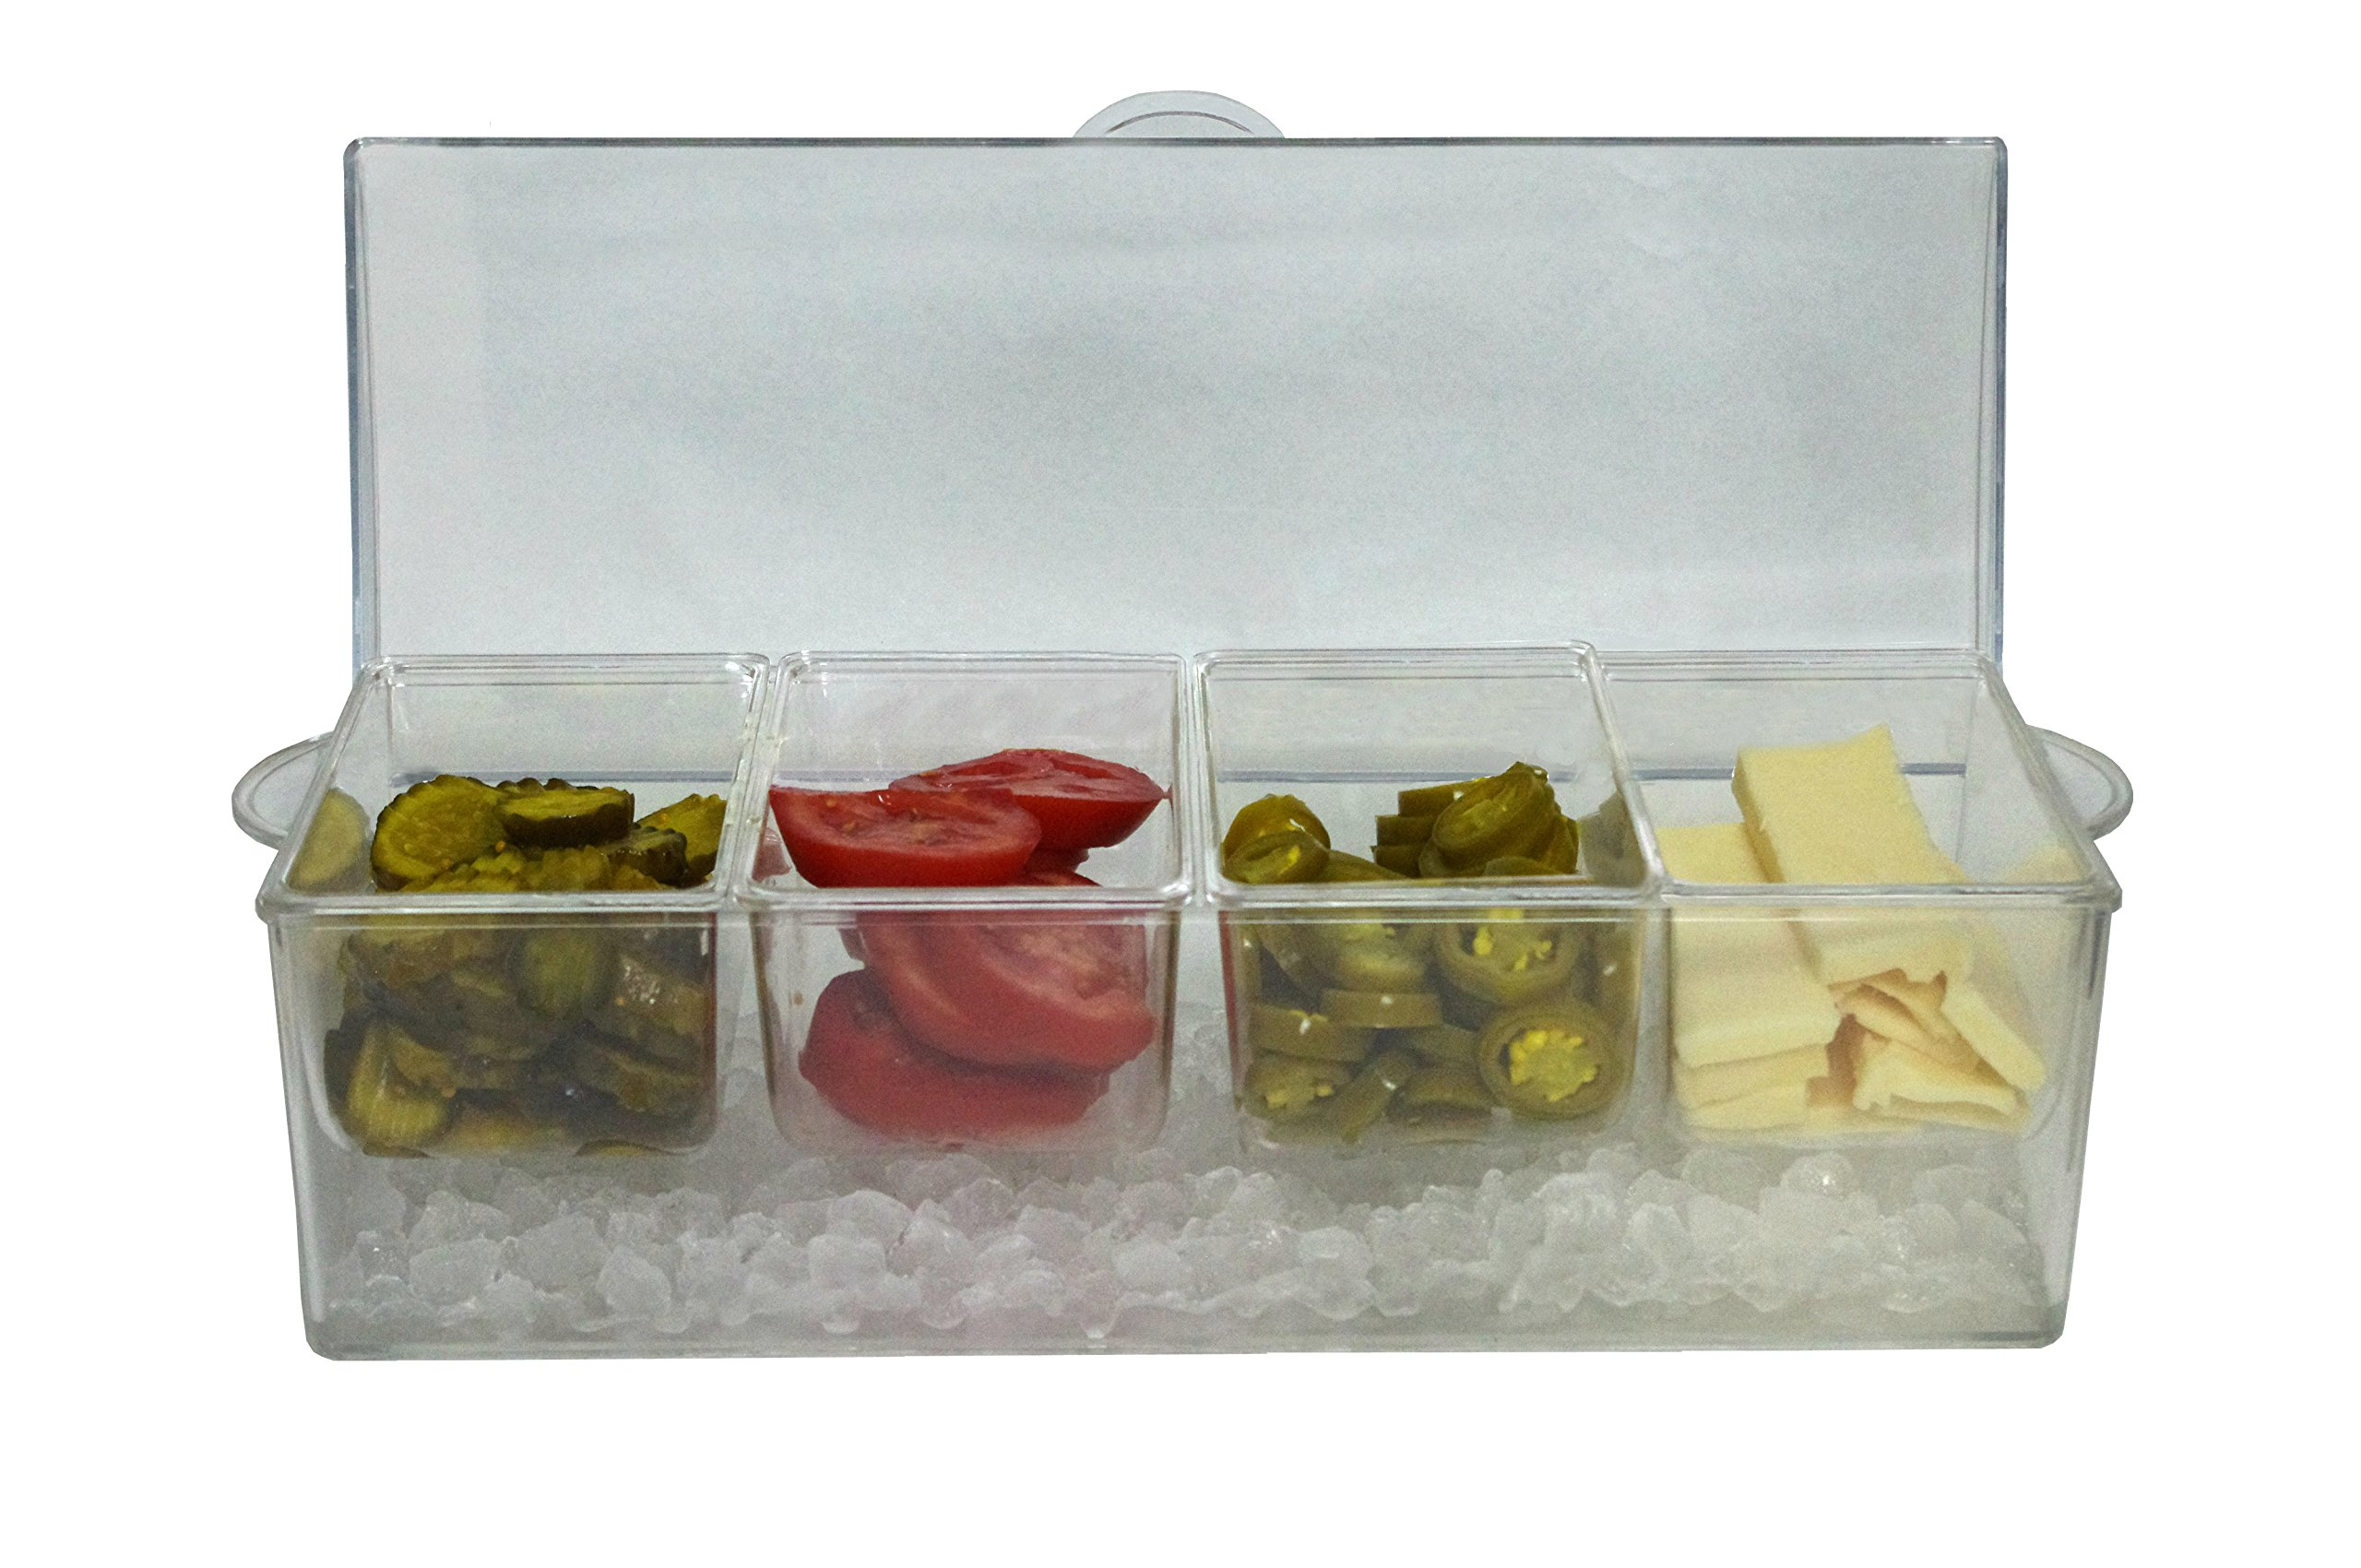 Large Clear Condiment Server Organizer on Ice